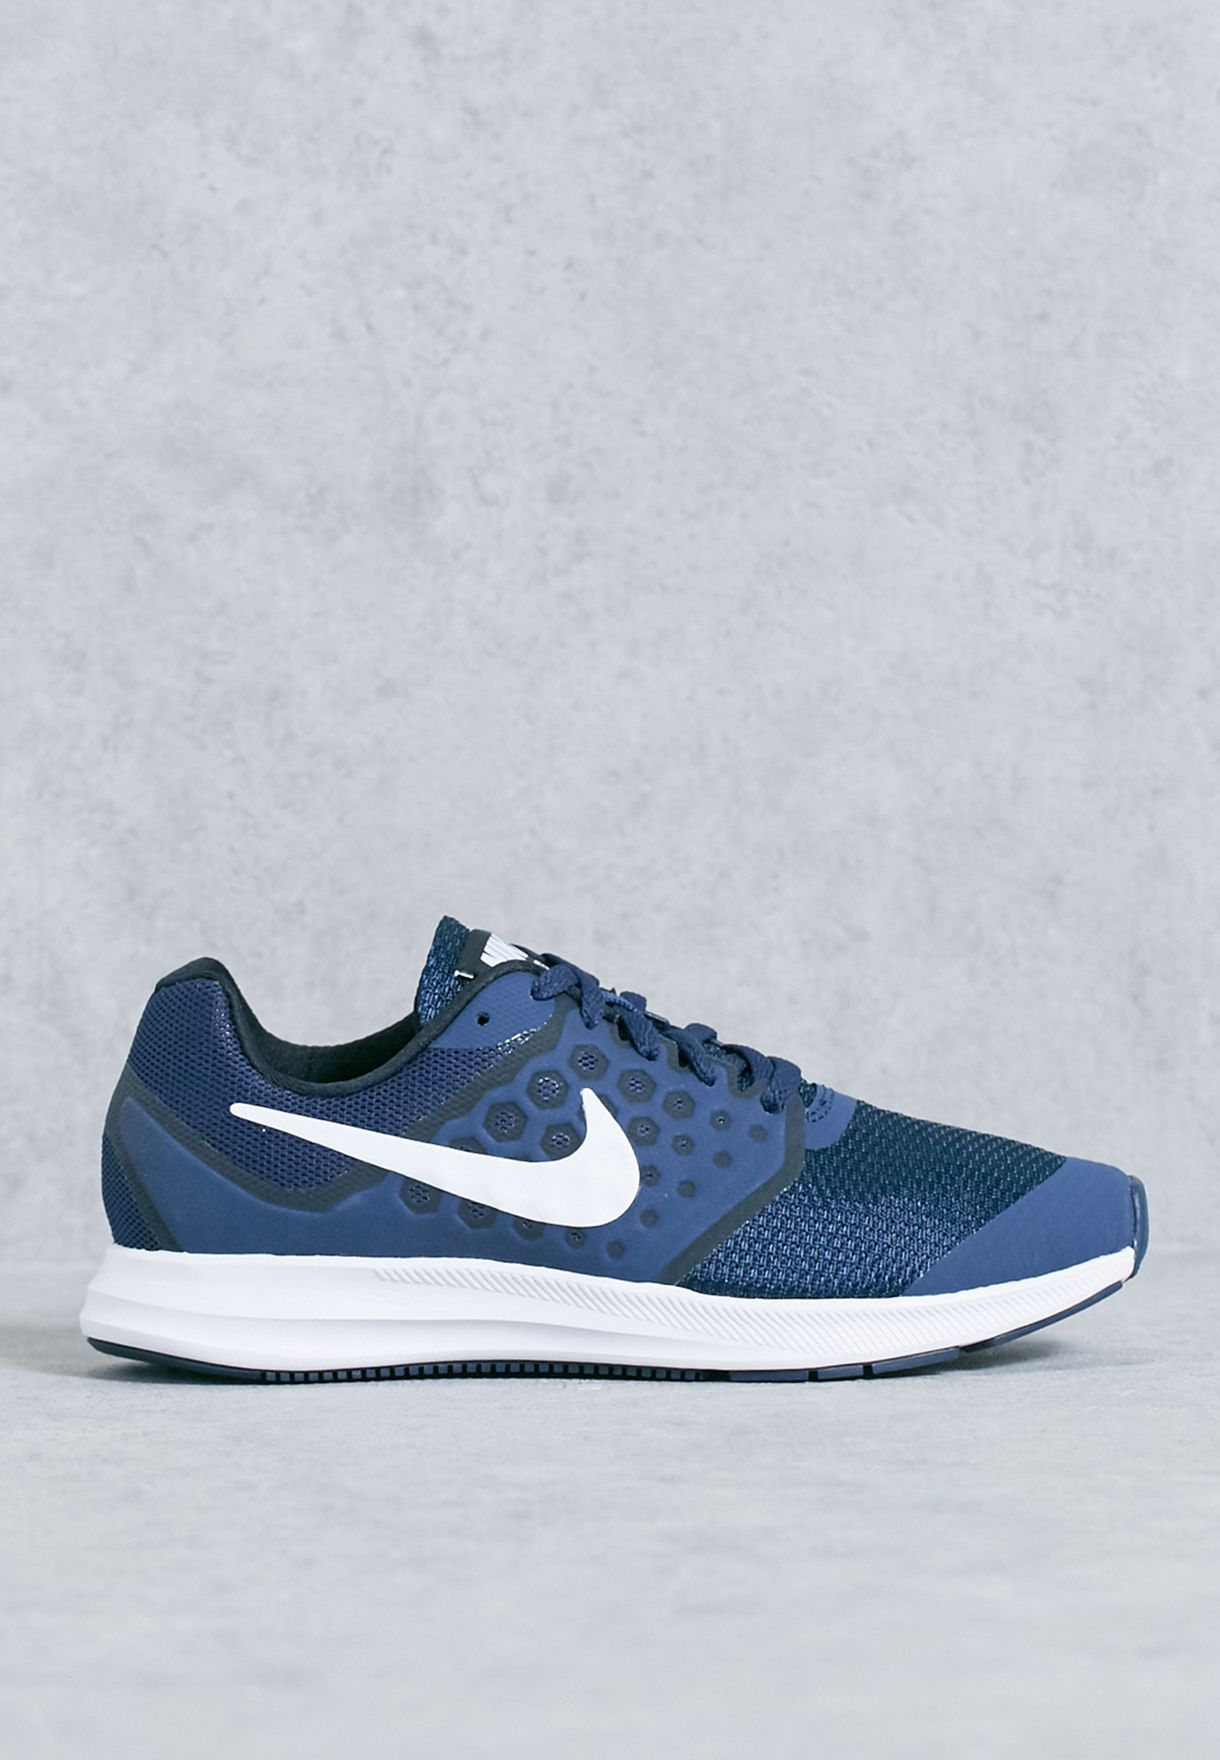 293e81c9eca3 Shop Nike navy Downshifter 7 Youth 869969-400 for Kids in UAE ...